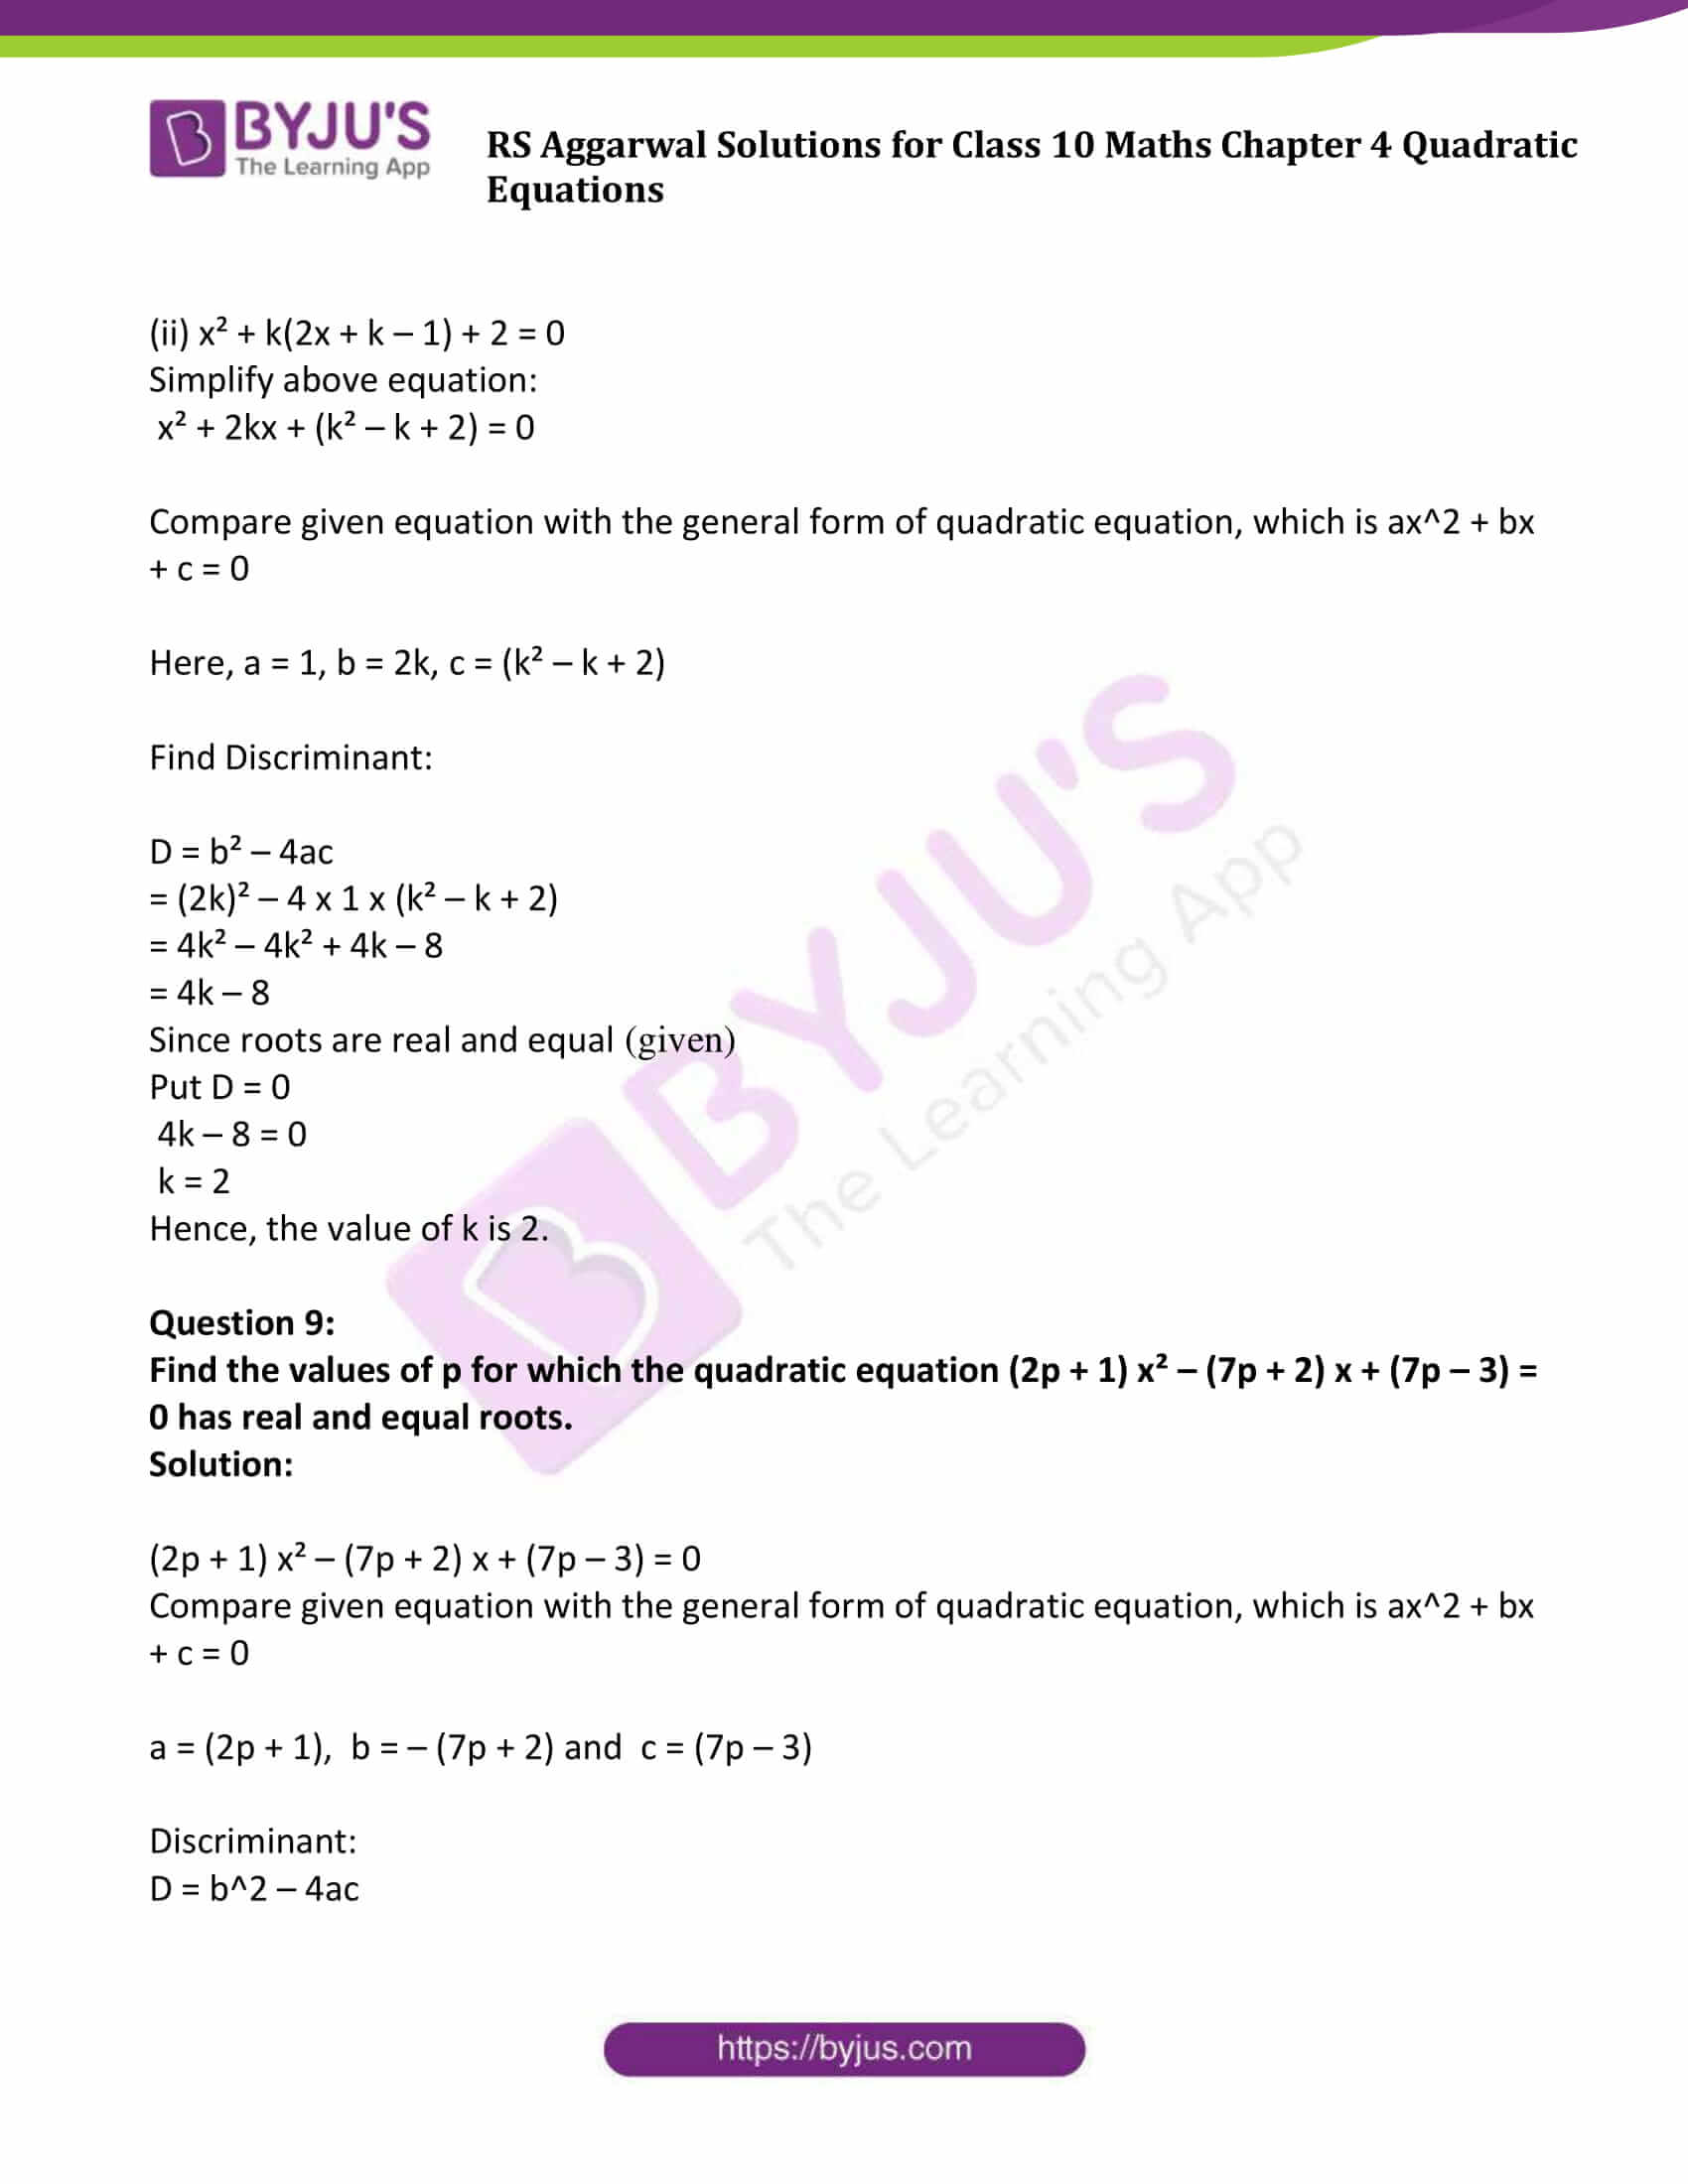 RS Aggarwal Sol class 10 Maths Chapter 4D